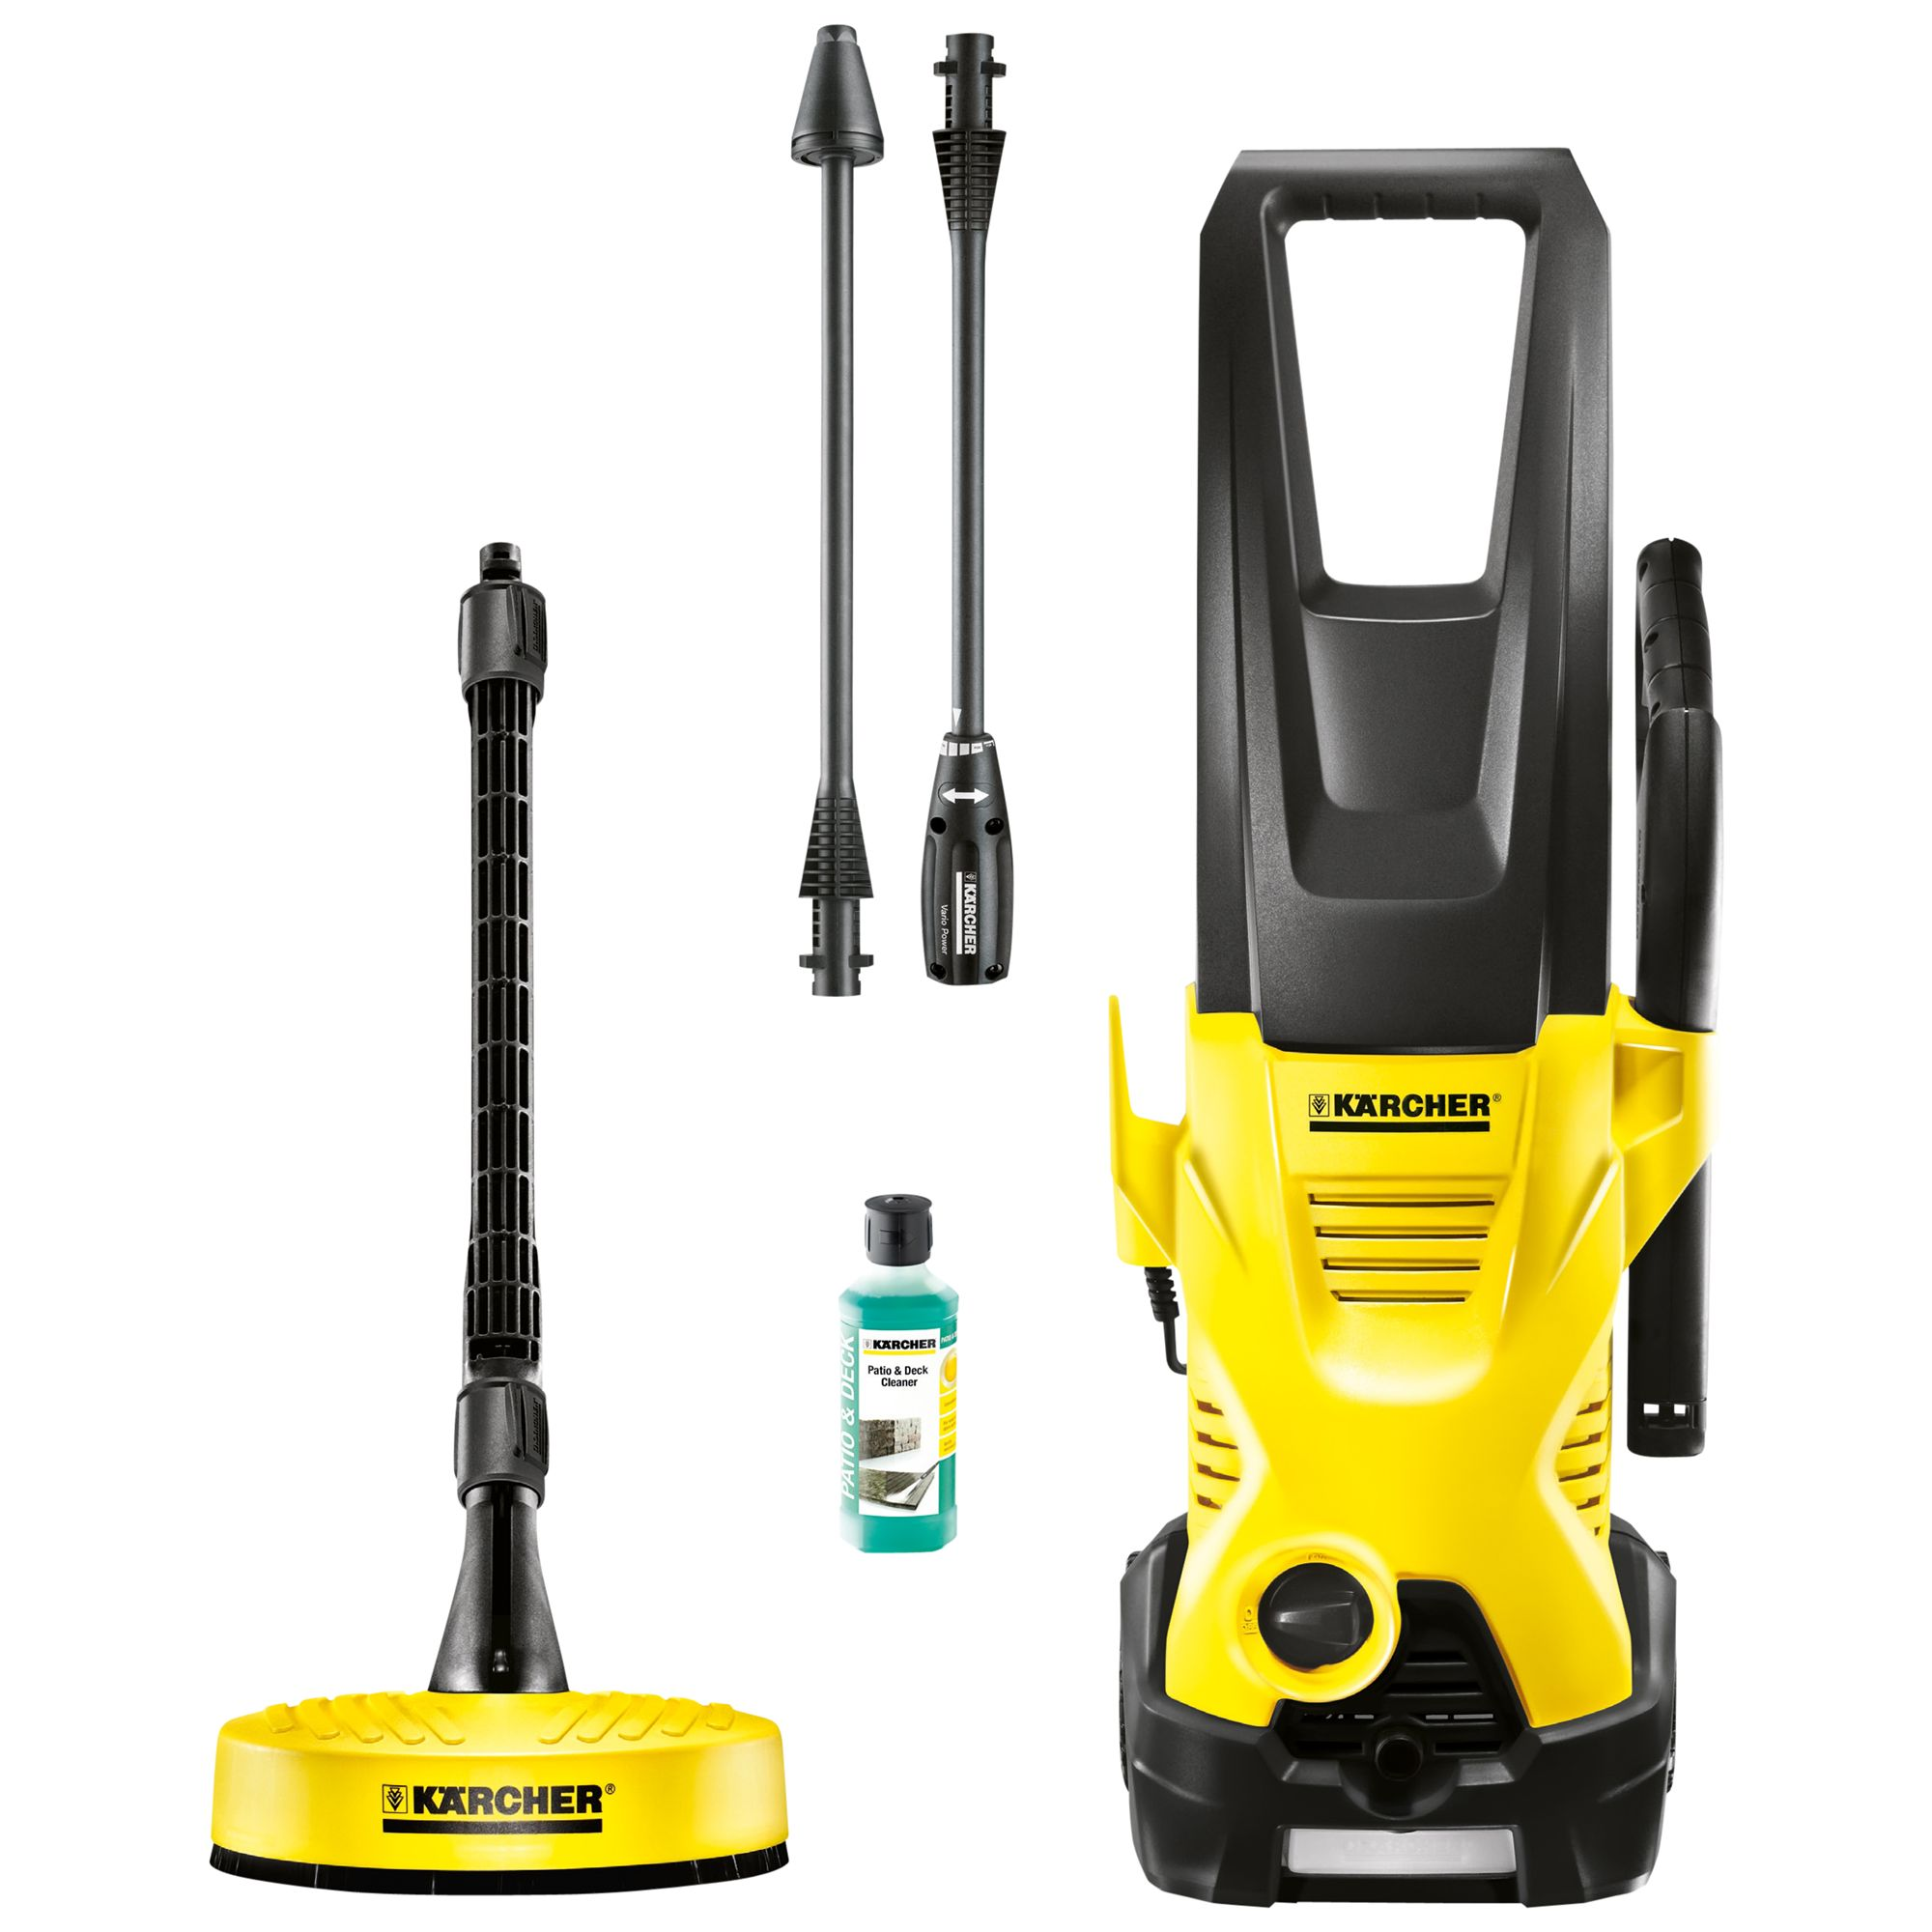 Karcher K2 Premium Home High Pressure Washer (Yellow)